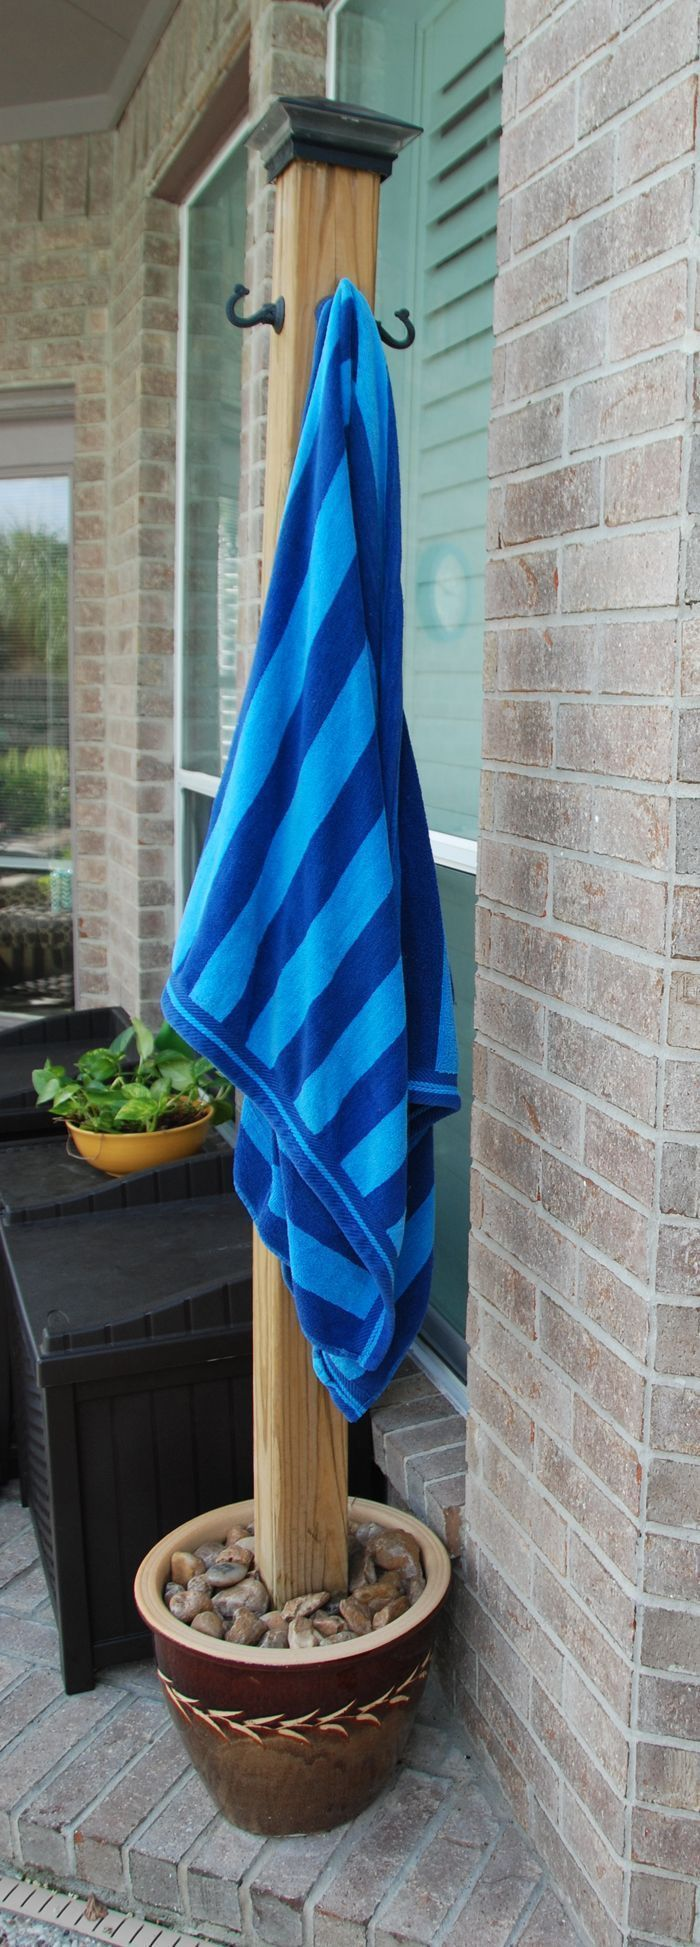 DIY Pool Towel Holder - We made this stand to hang our wet pool towels to dry after swimming!  ~ Great pin! For Oahu architectural design visit http://ownerbuiltdesign.com